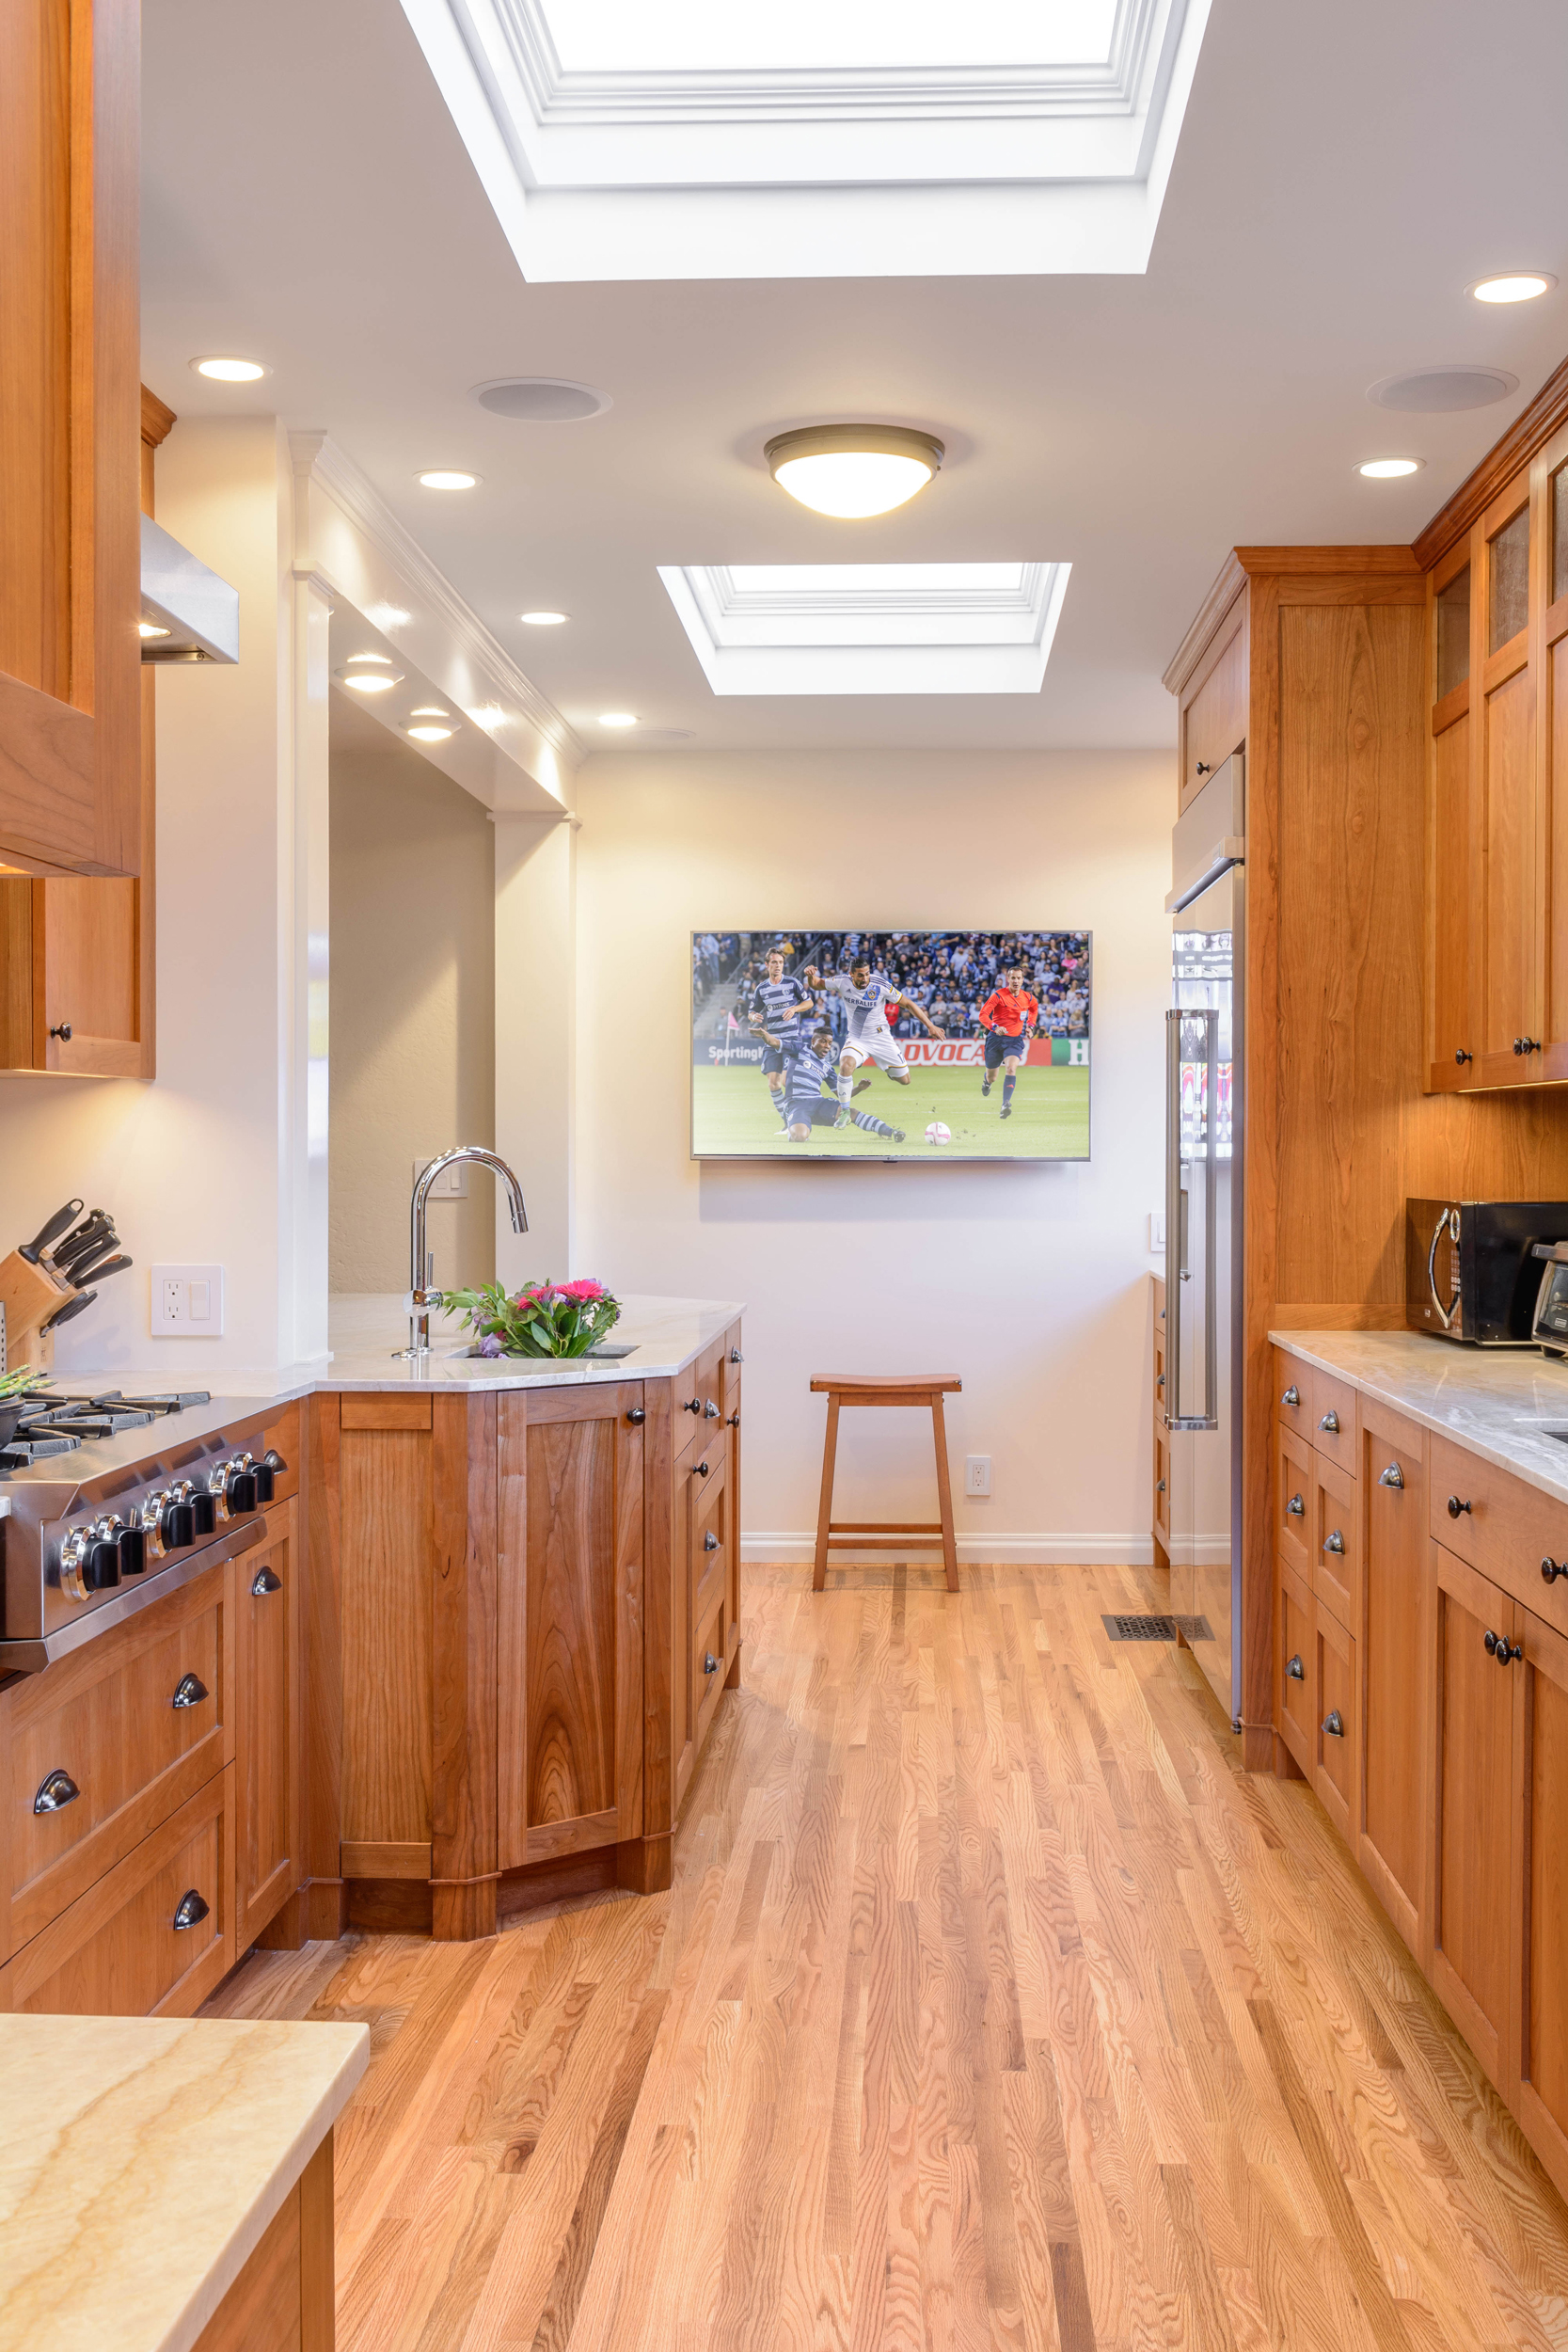 TV in a galley kitchen: the perfect spot